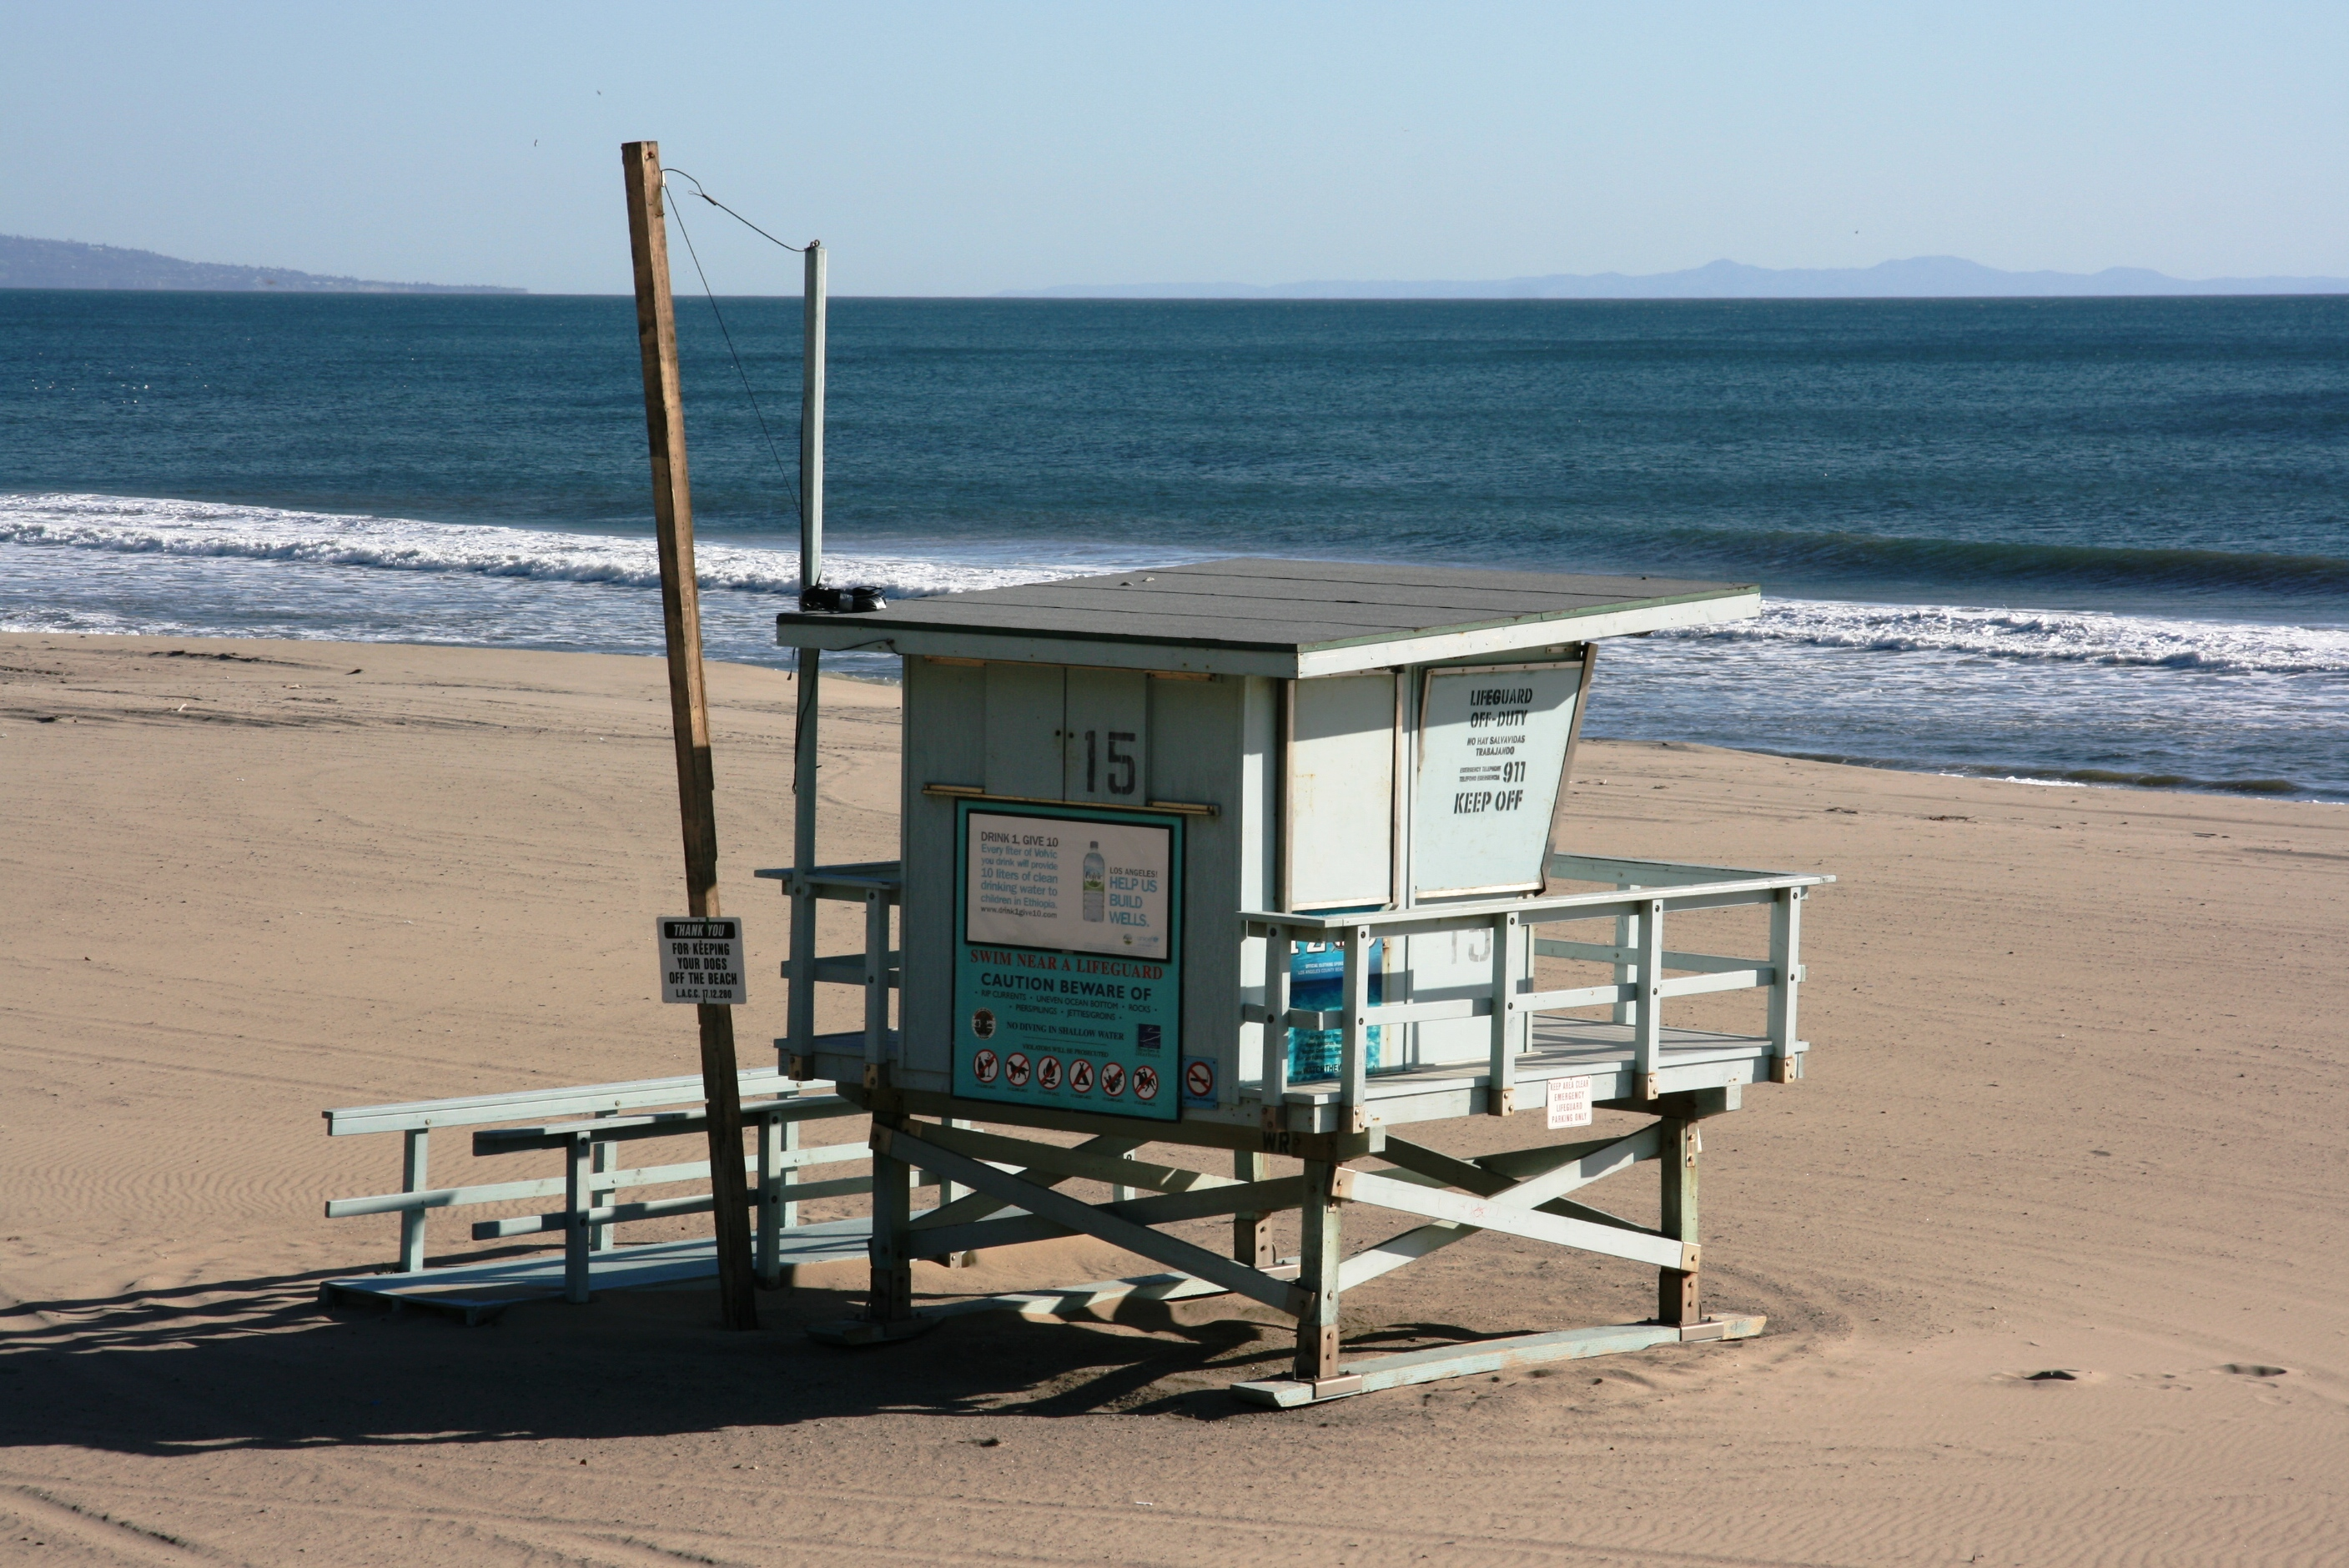 Lifeguard Tower 15 at Will Rogers State Beach